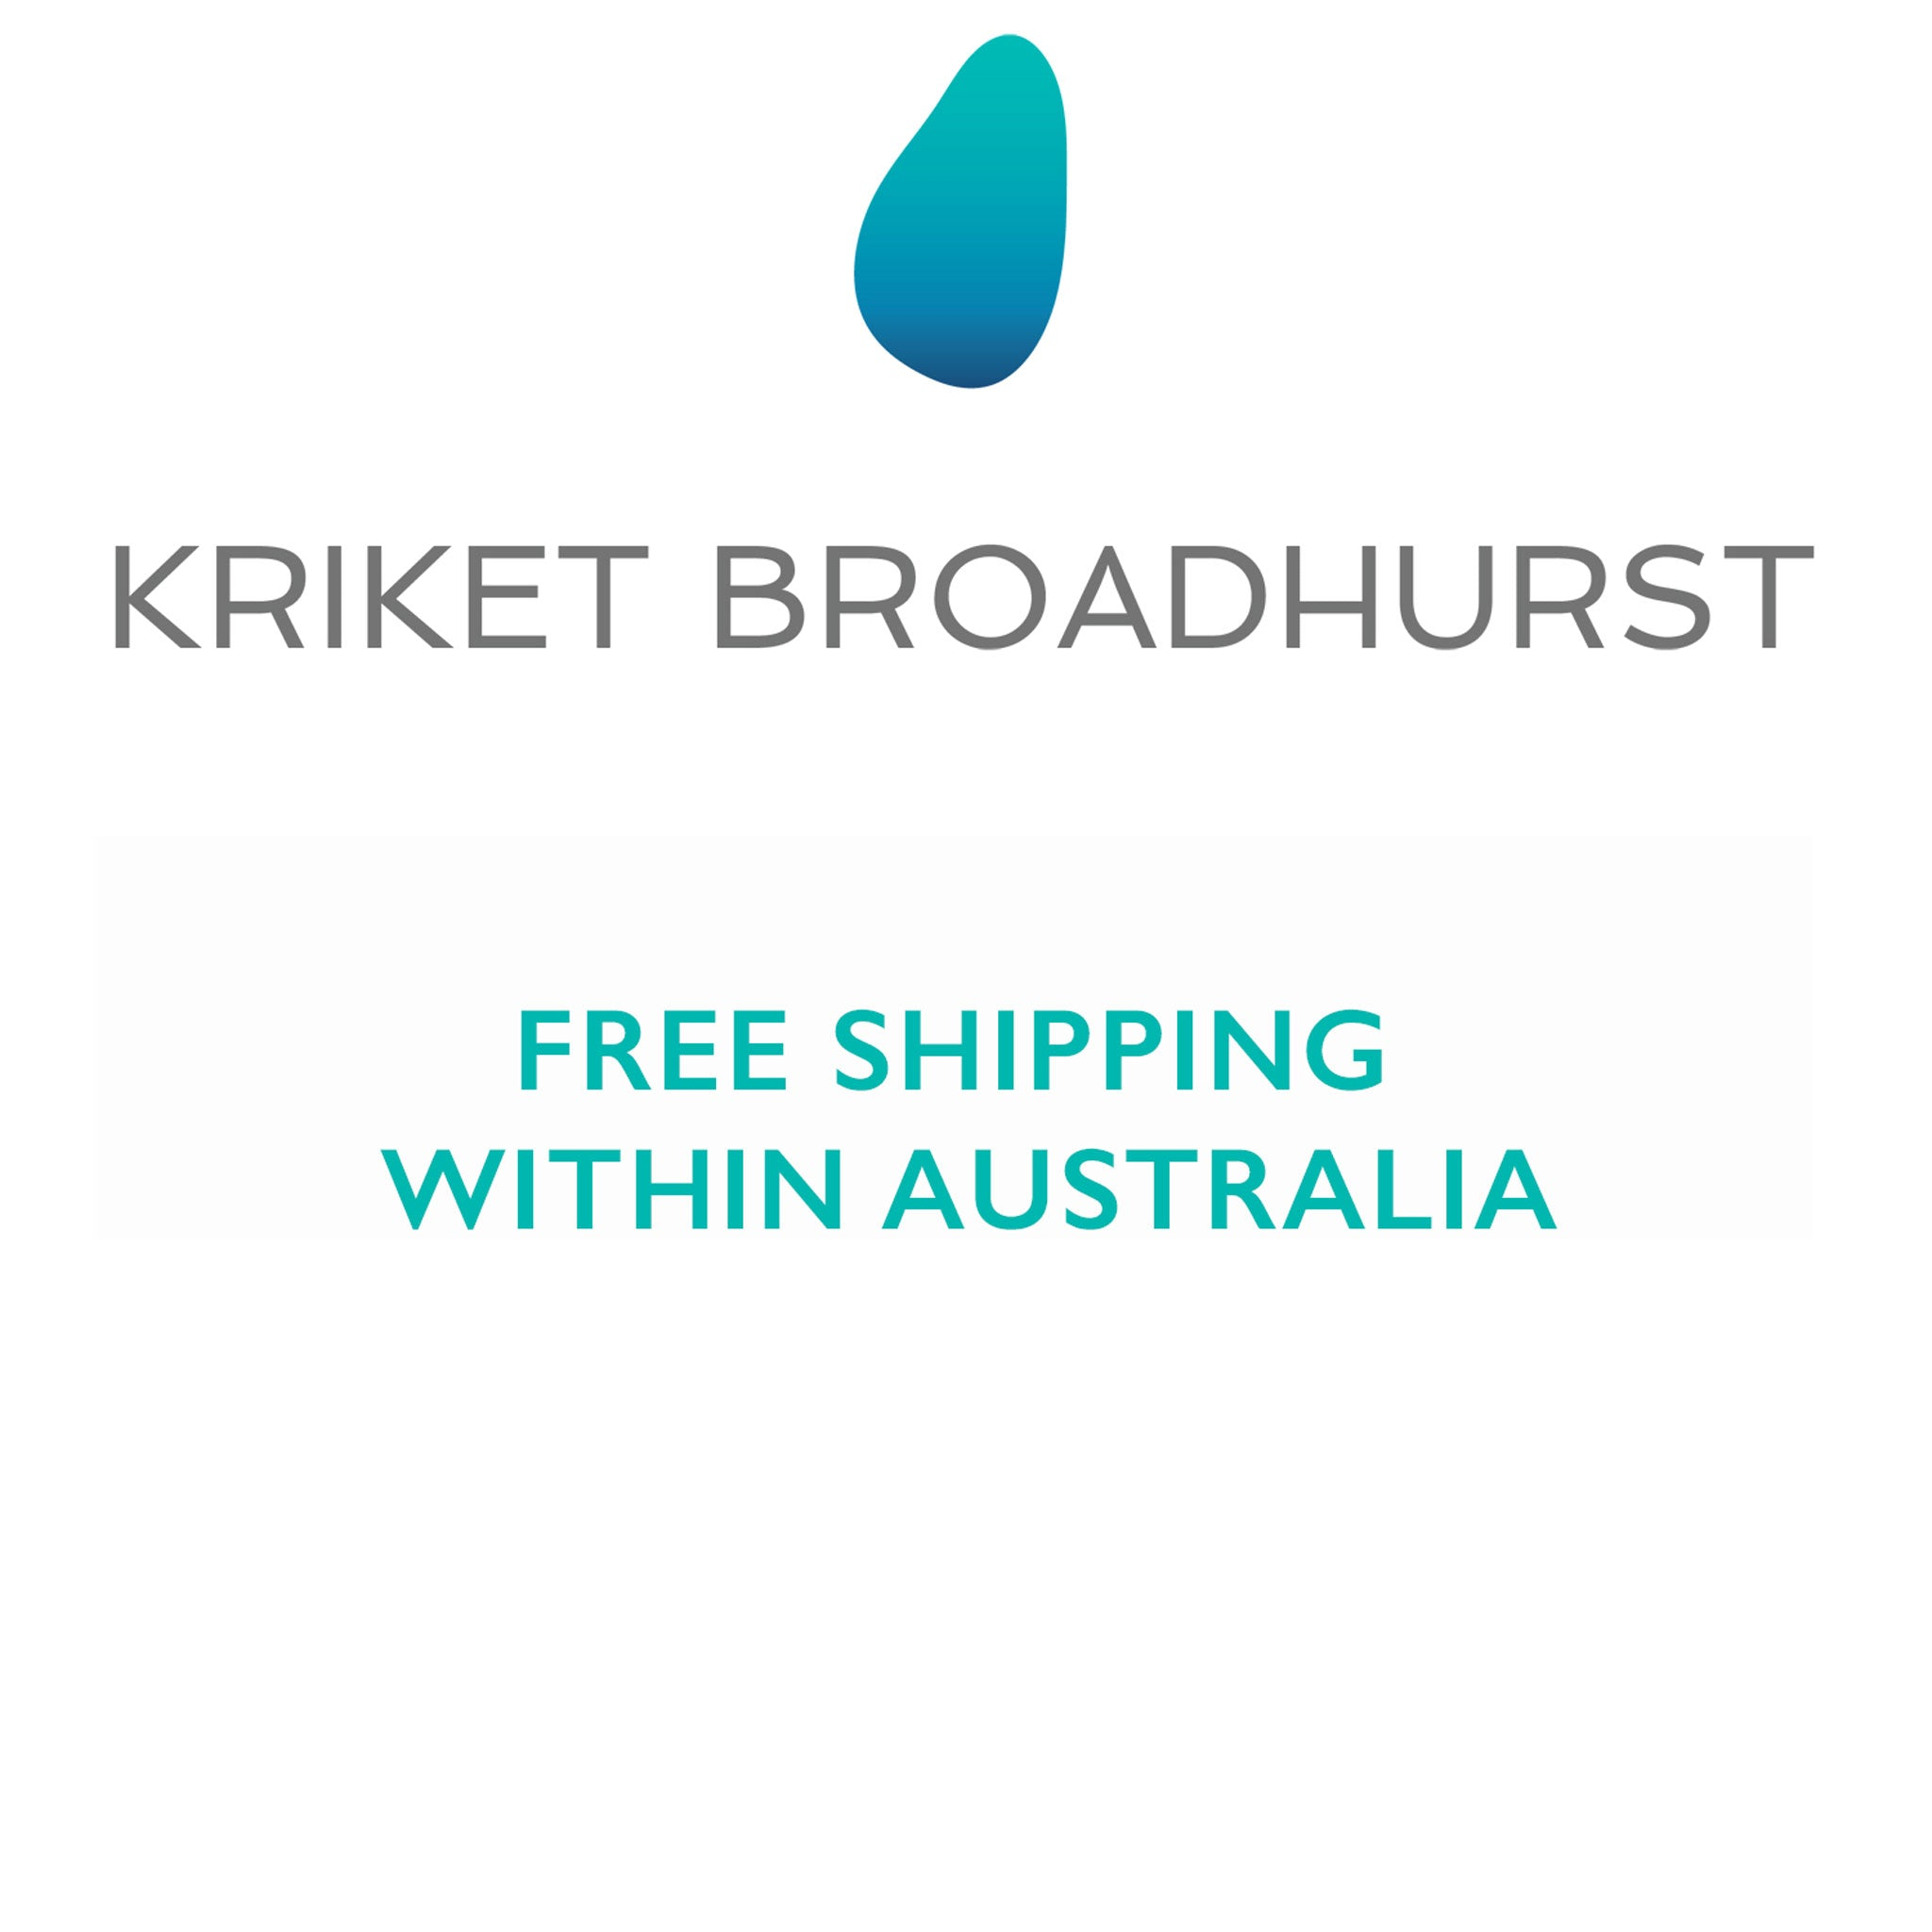 Kriket Broadhurst seaglass jewellery free shipping in Australia